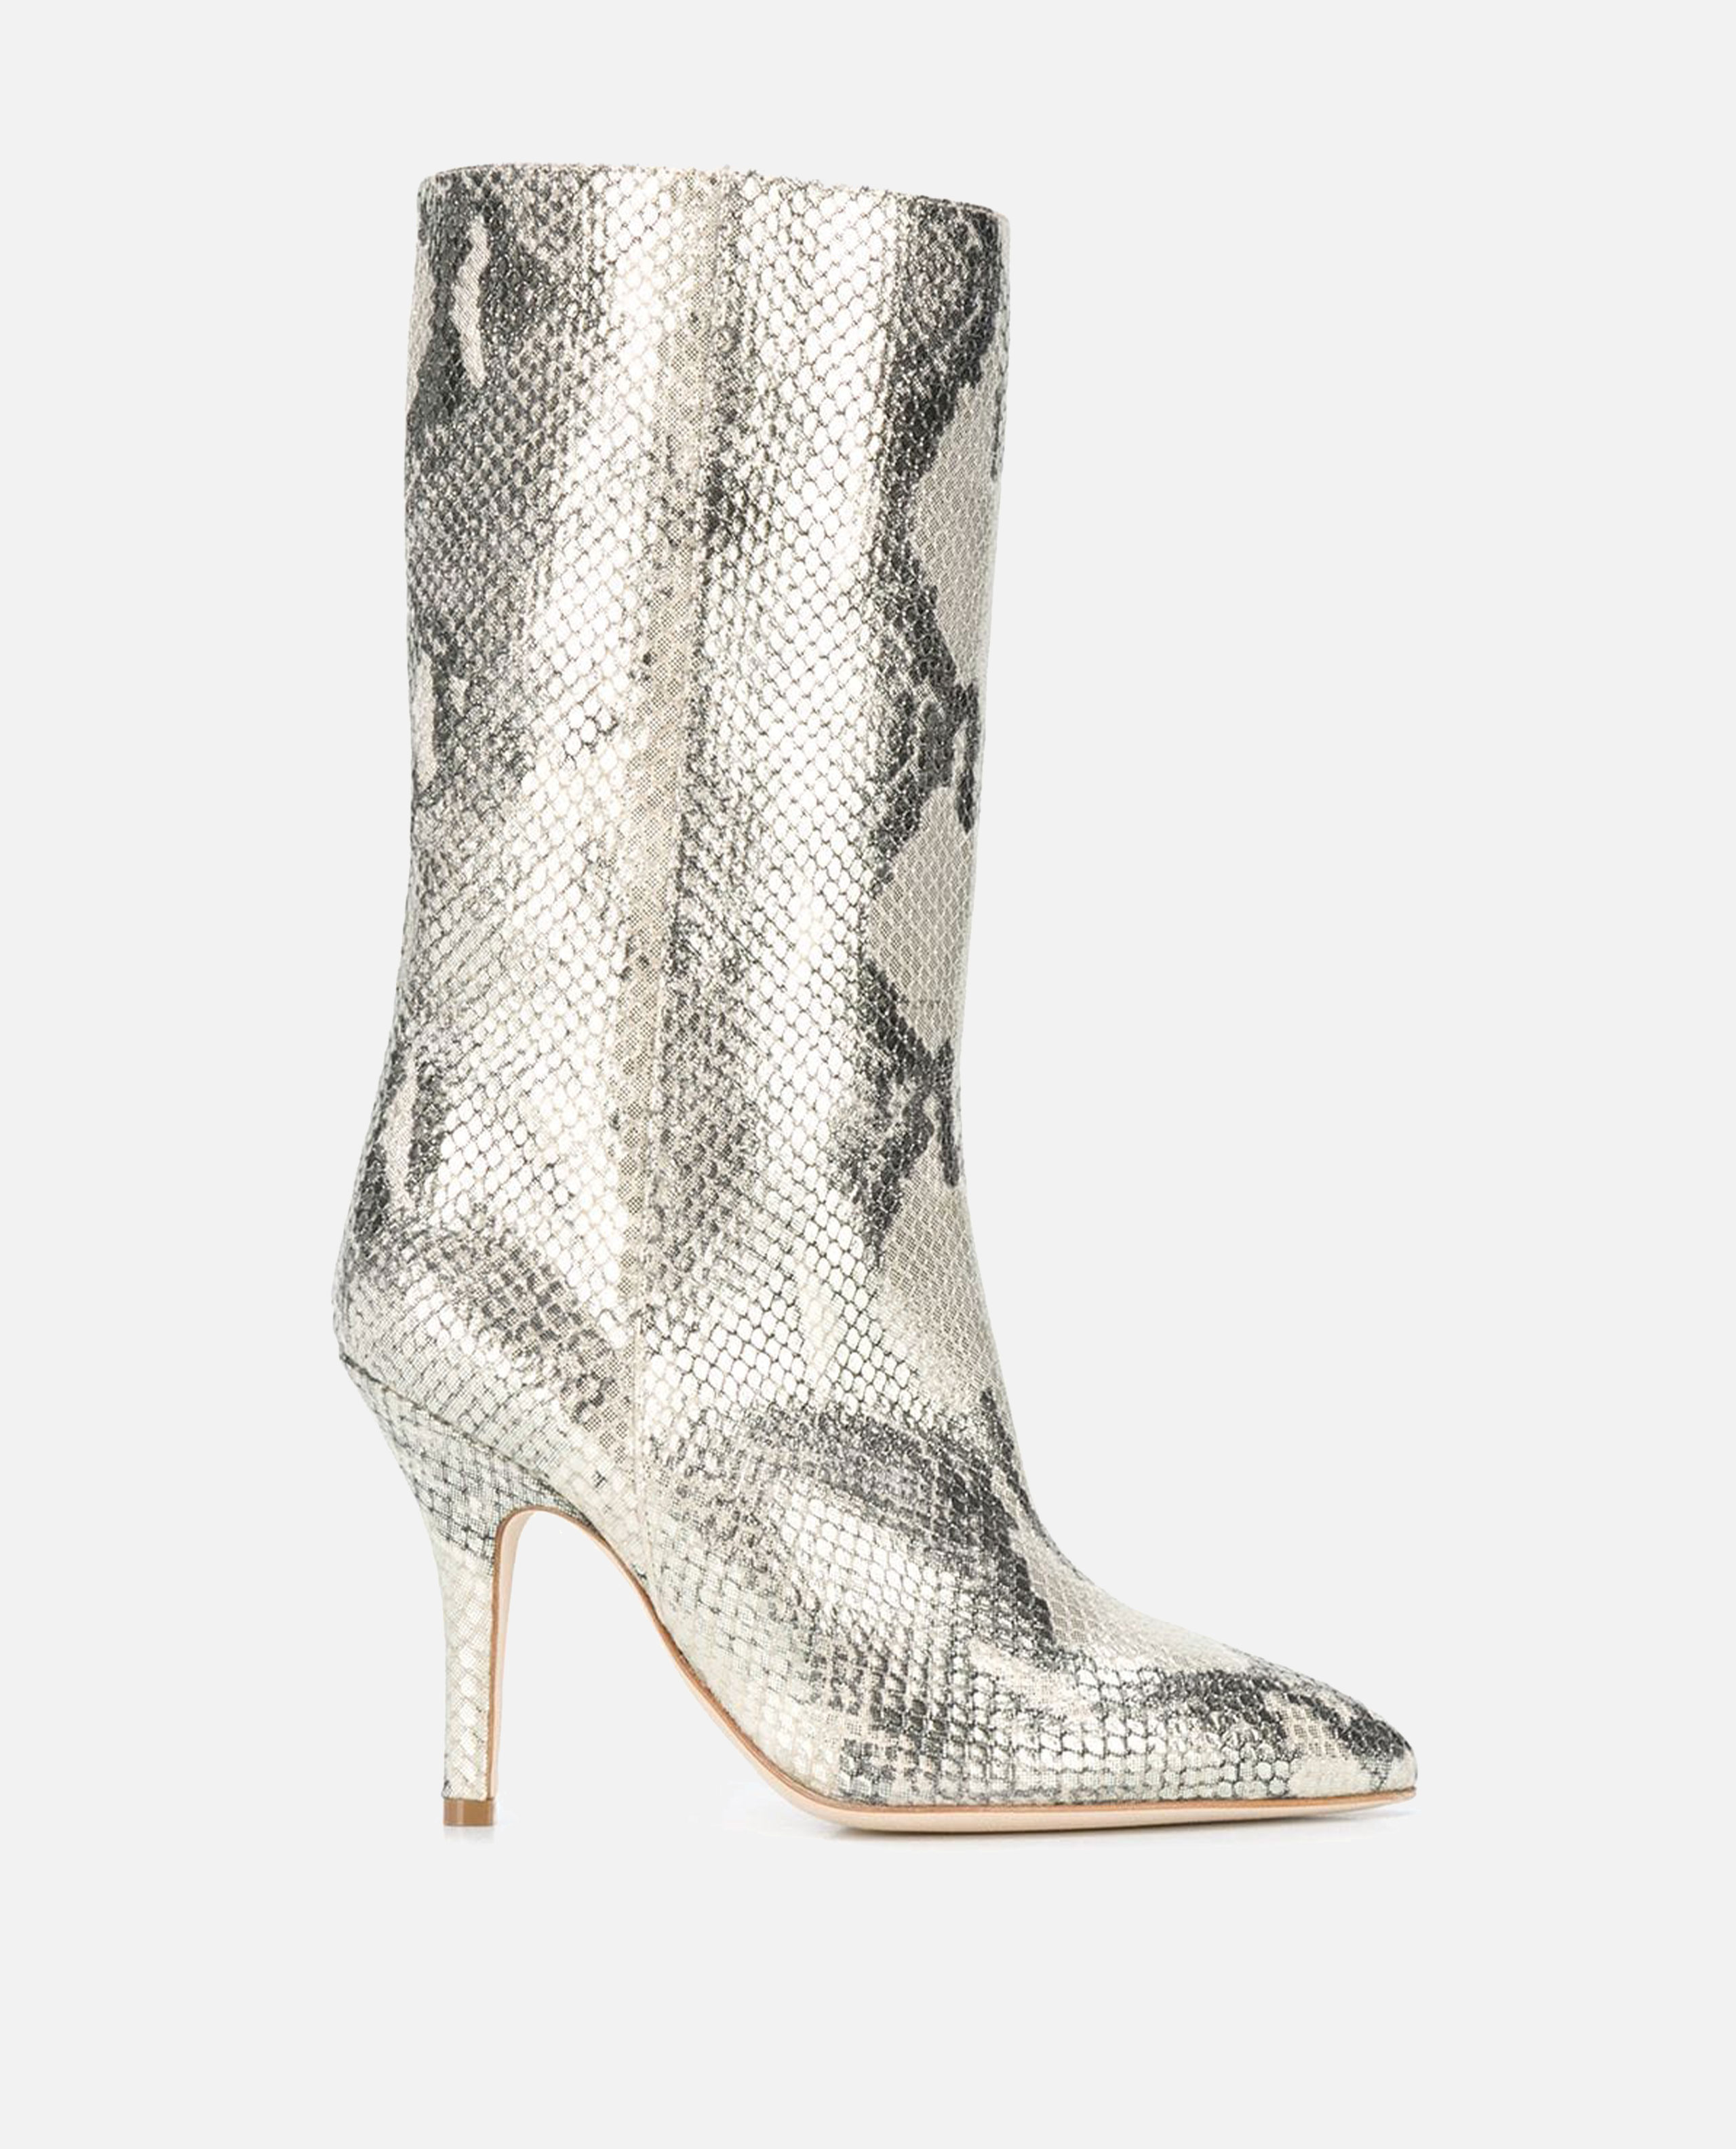 Image of Paris Texas boots in python print